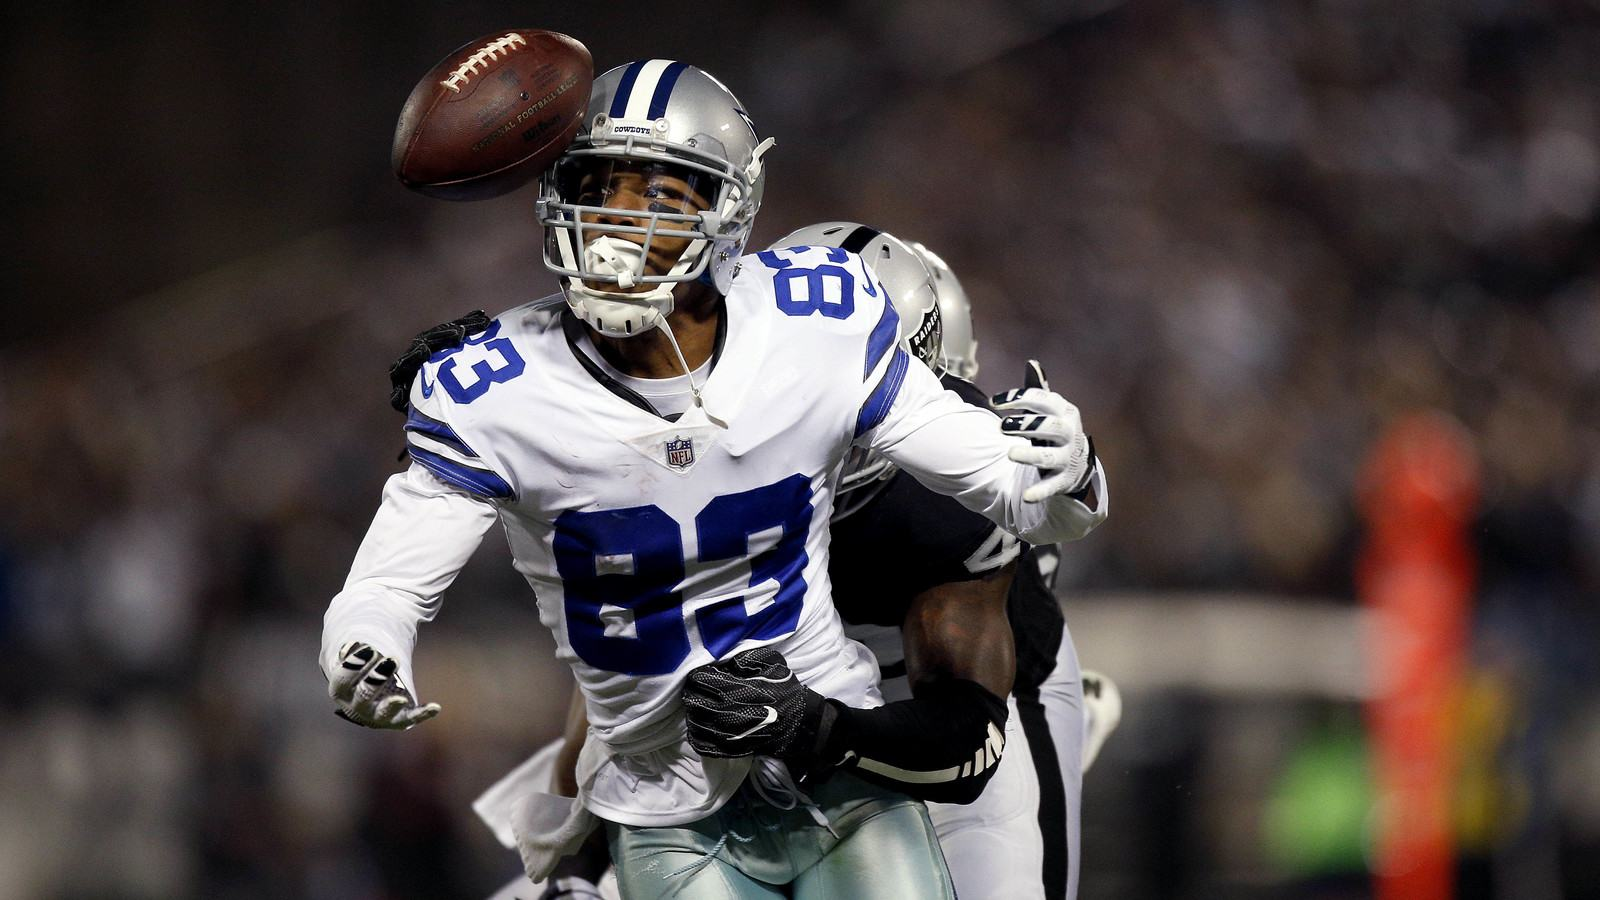 Sean-martin_dallas-cowboys_is-terrance-williams-roster-spot-safe-with-dallas-cowboys